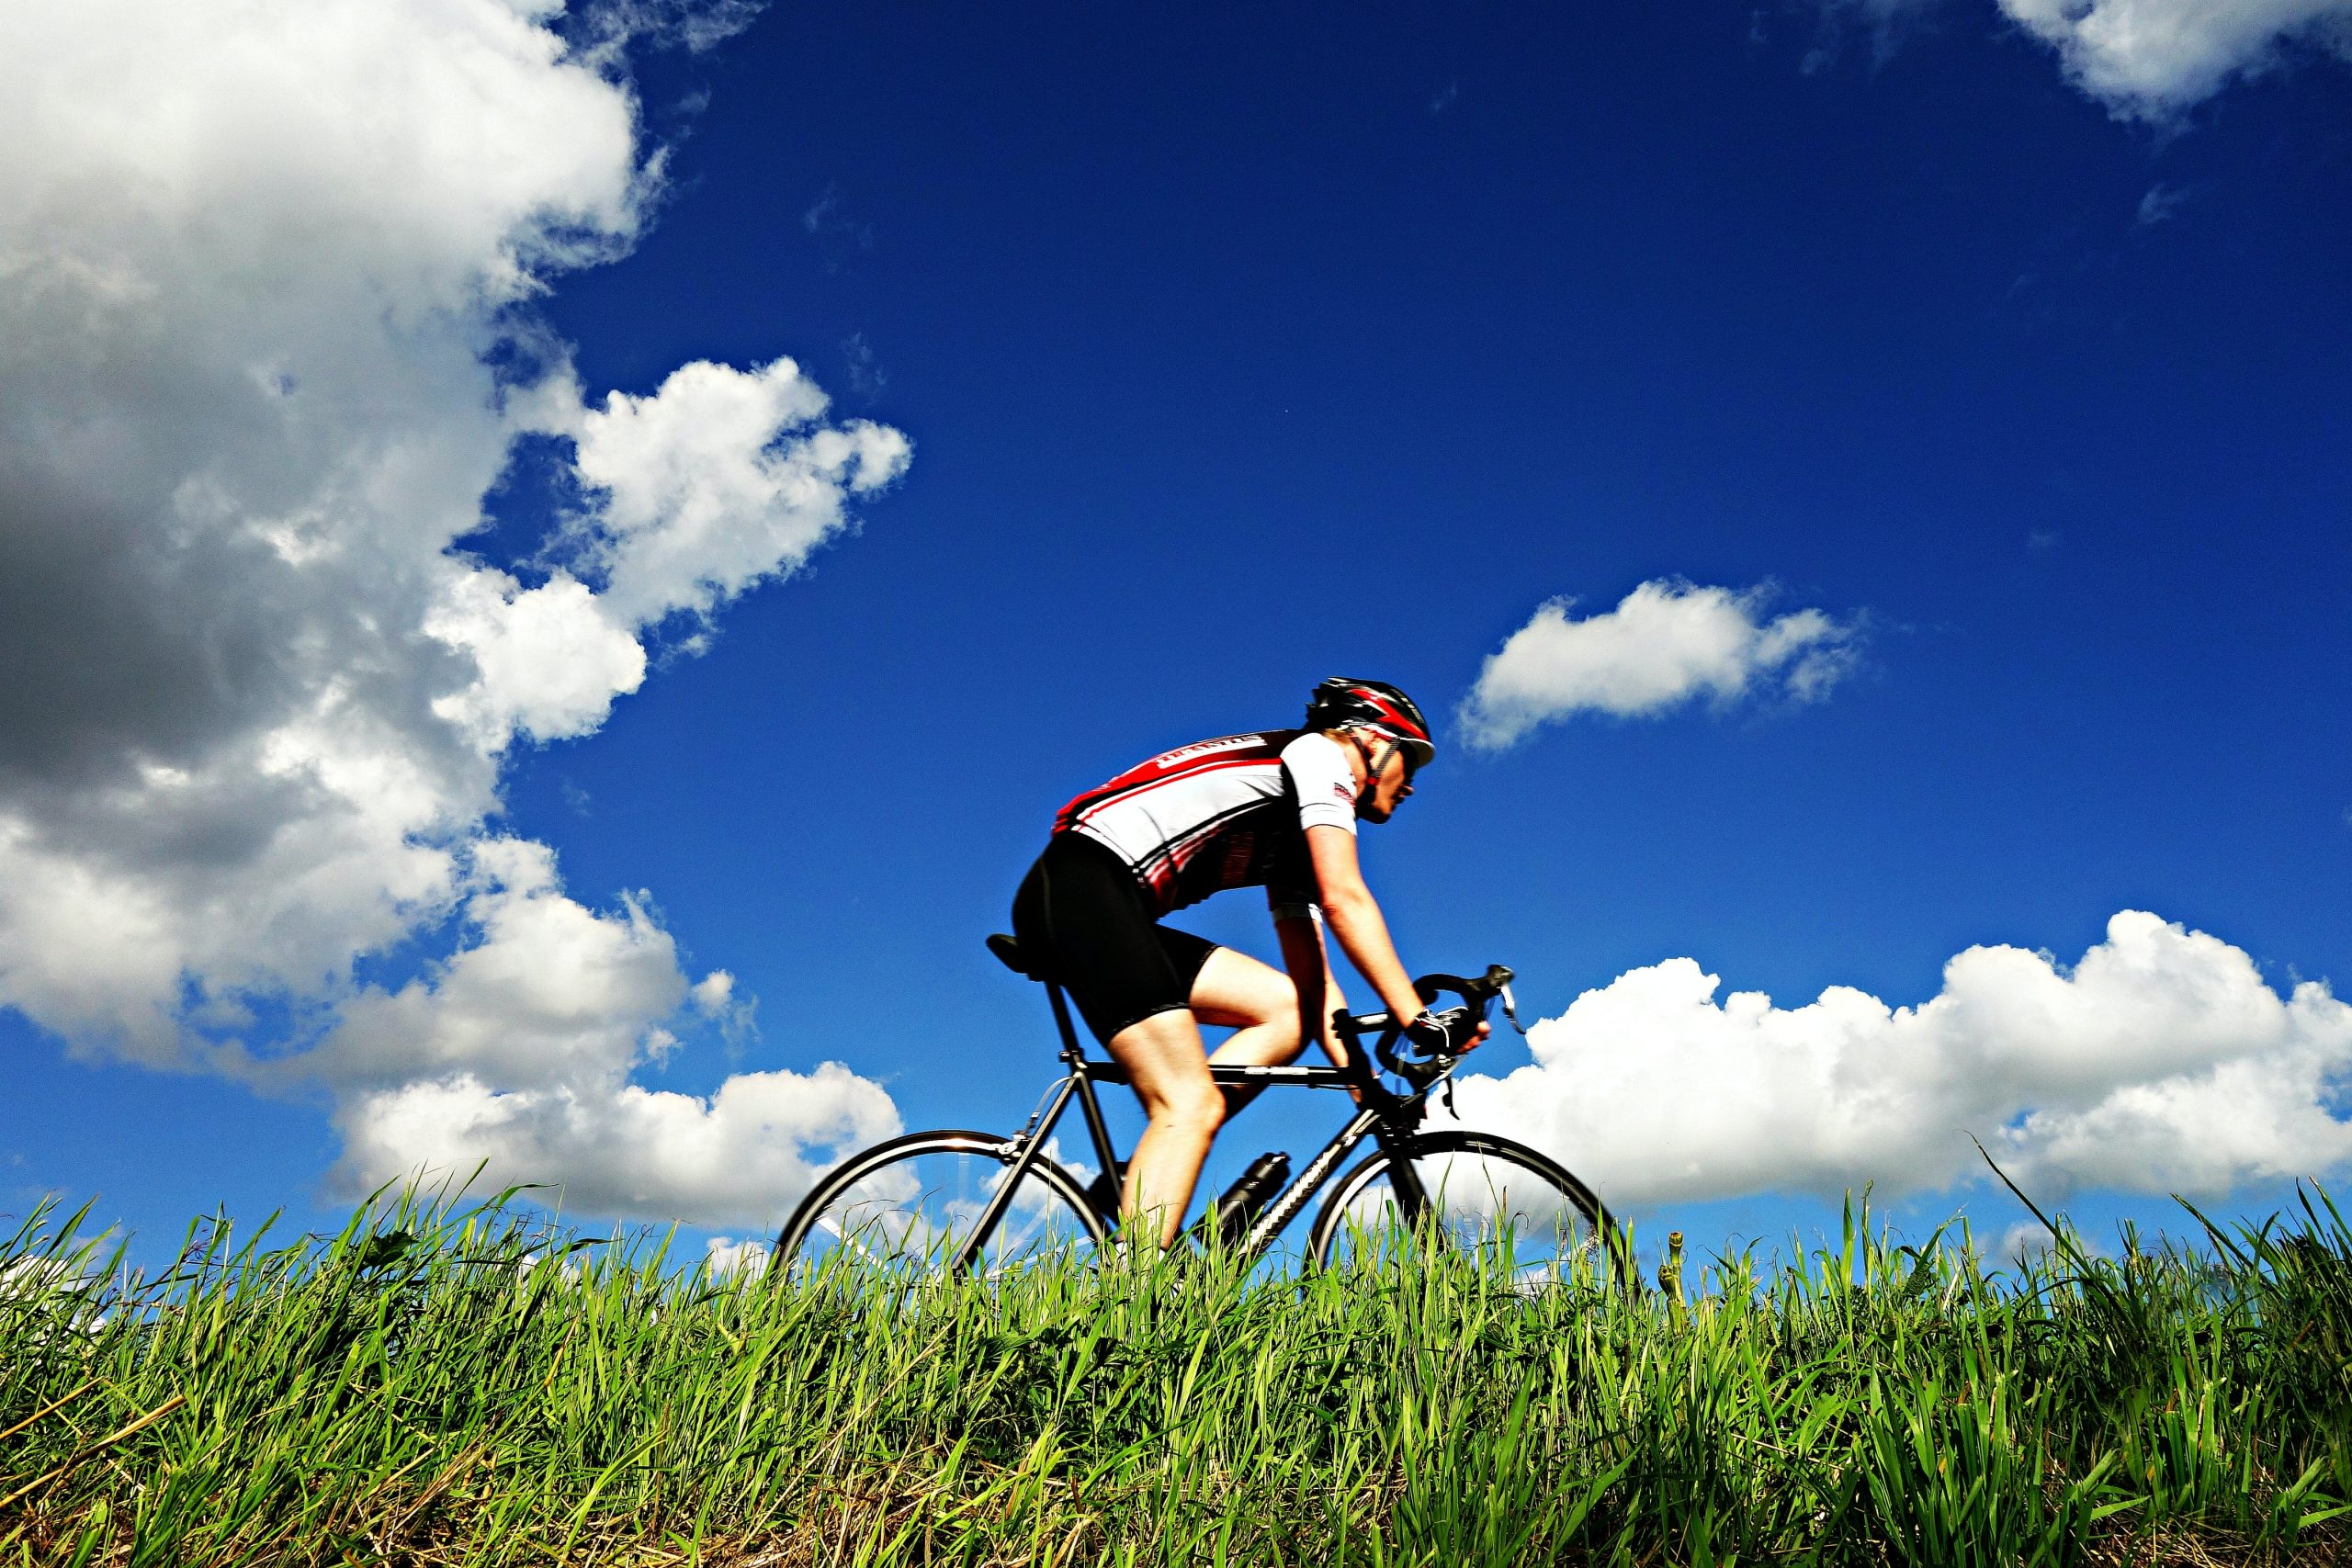 Image of a man cycling, with a blue cloudy sky in the background.